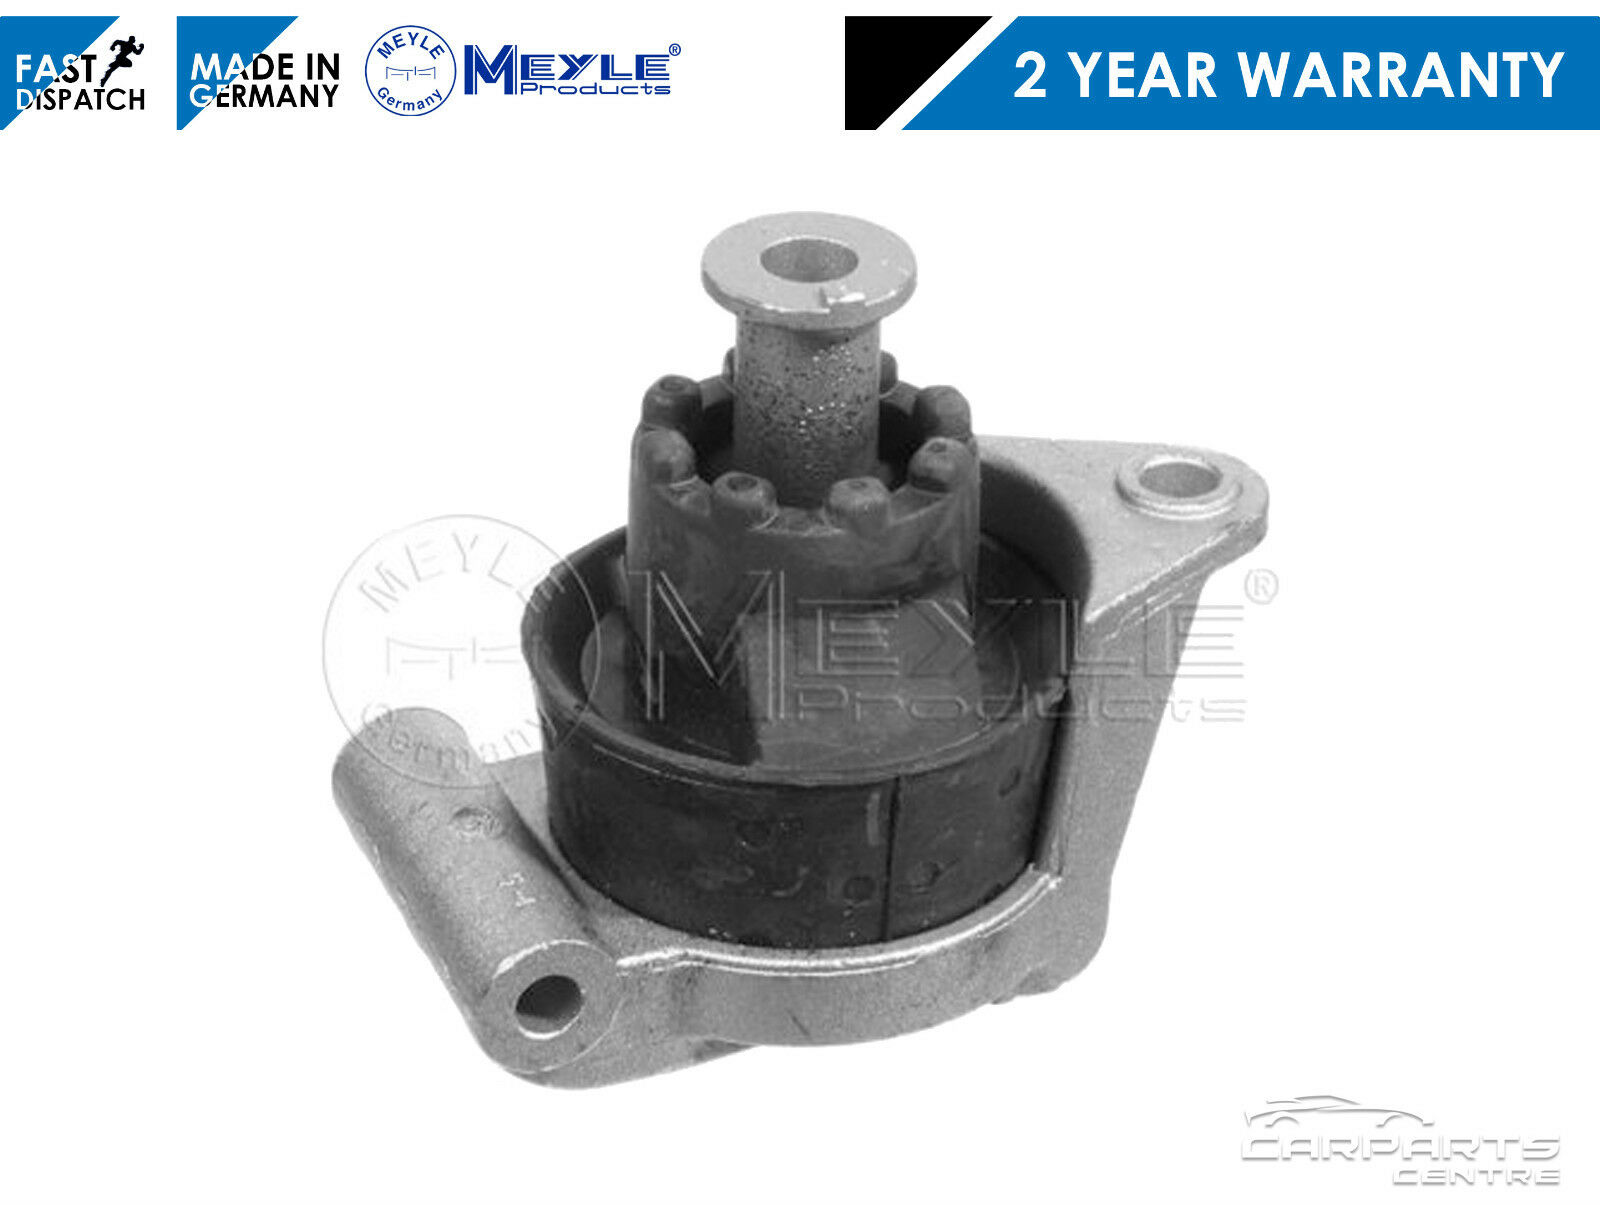 FOR VAUXHALL//OPEL ASTRA MK4 MK5 ZAFIRA 98-14 REAR ENGINE MOUNT MOUNTING DAMPER